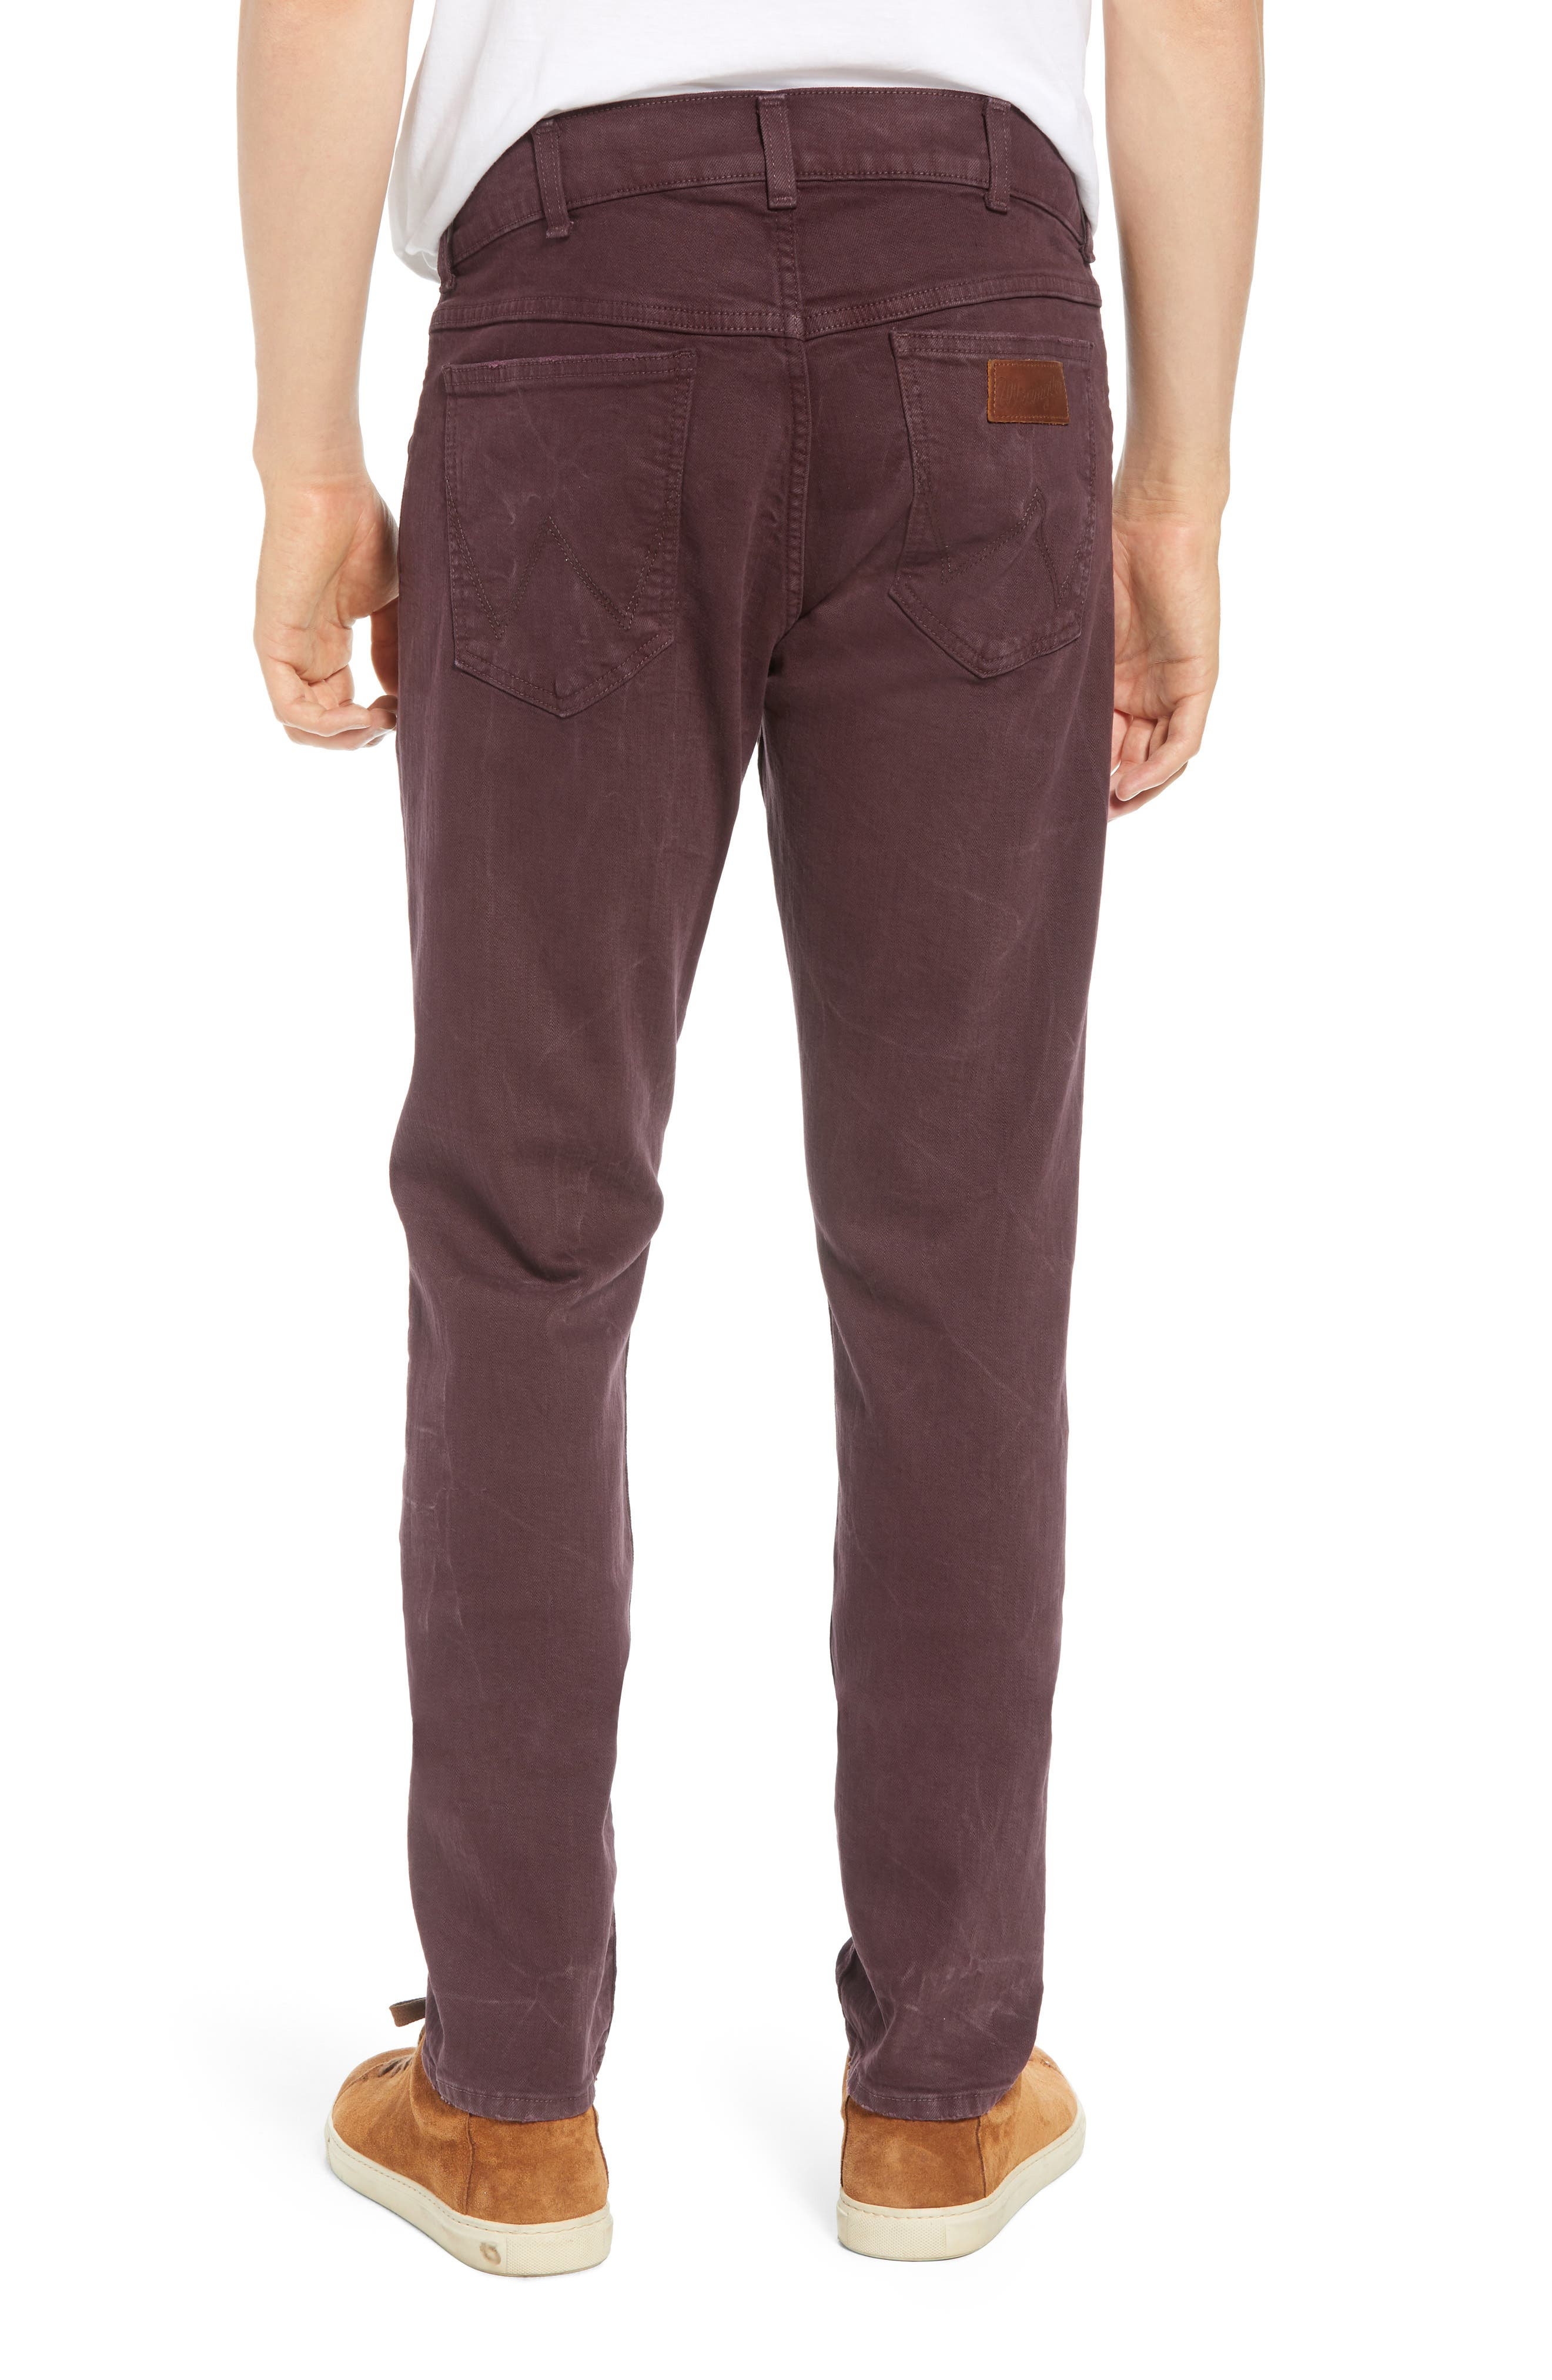 Larston Slim Fit Jeans,                             Alternate thumbnail 2, color,                             AUBERGINE